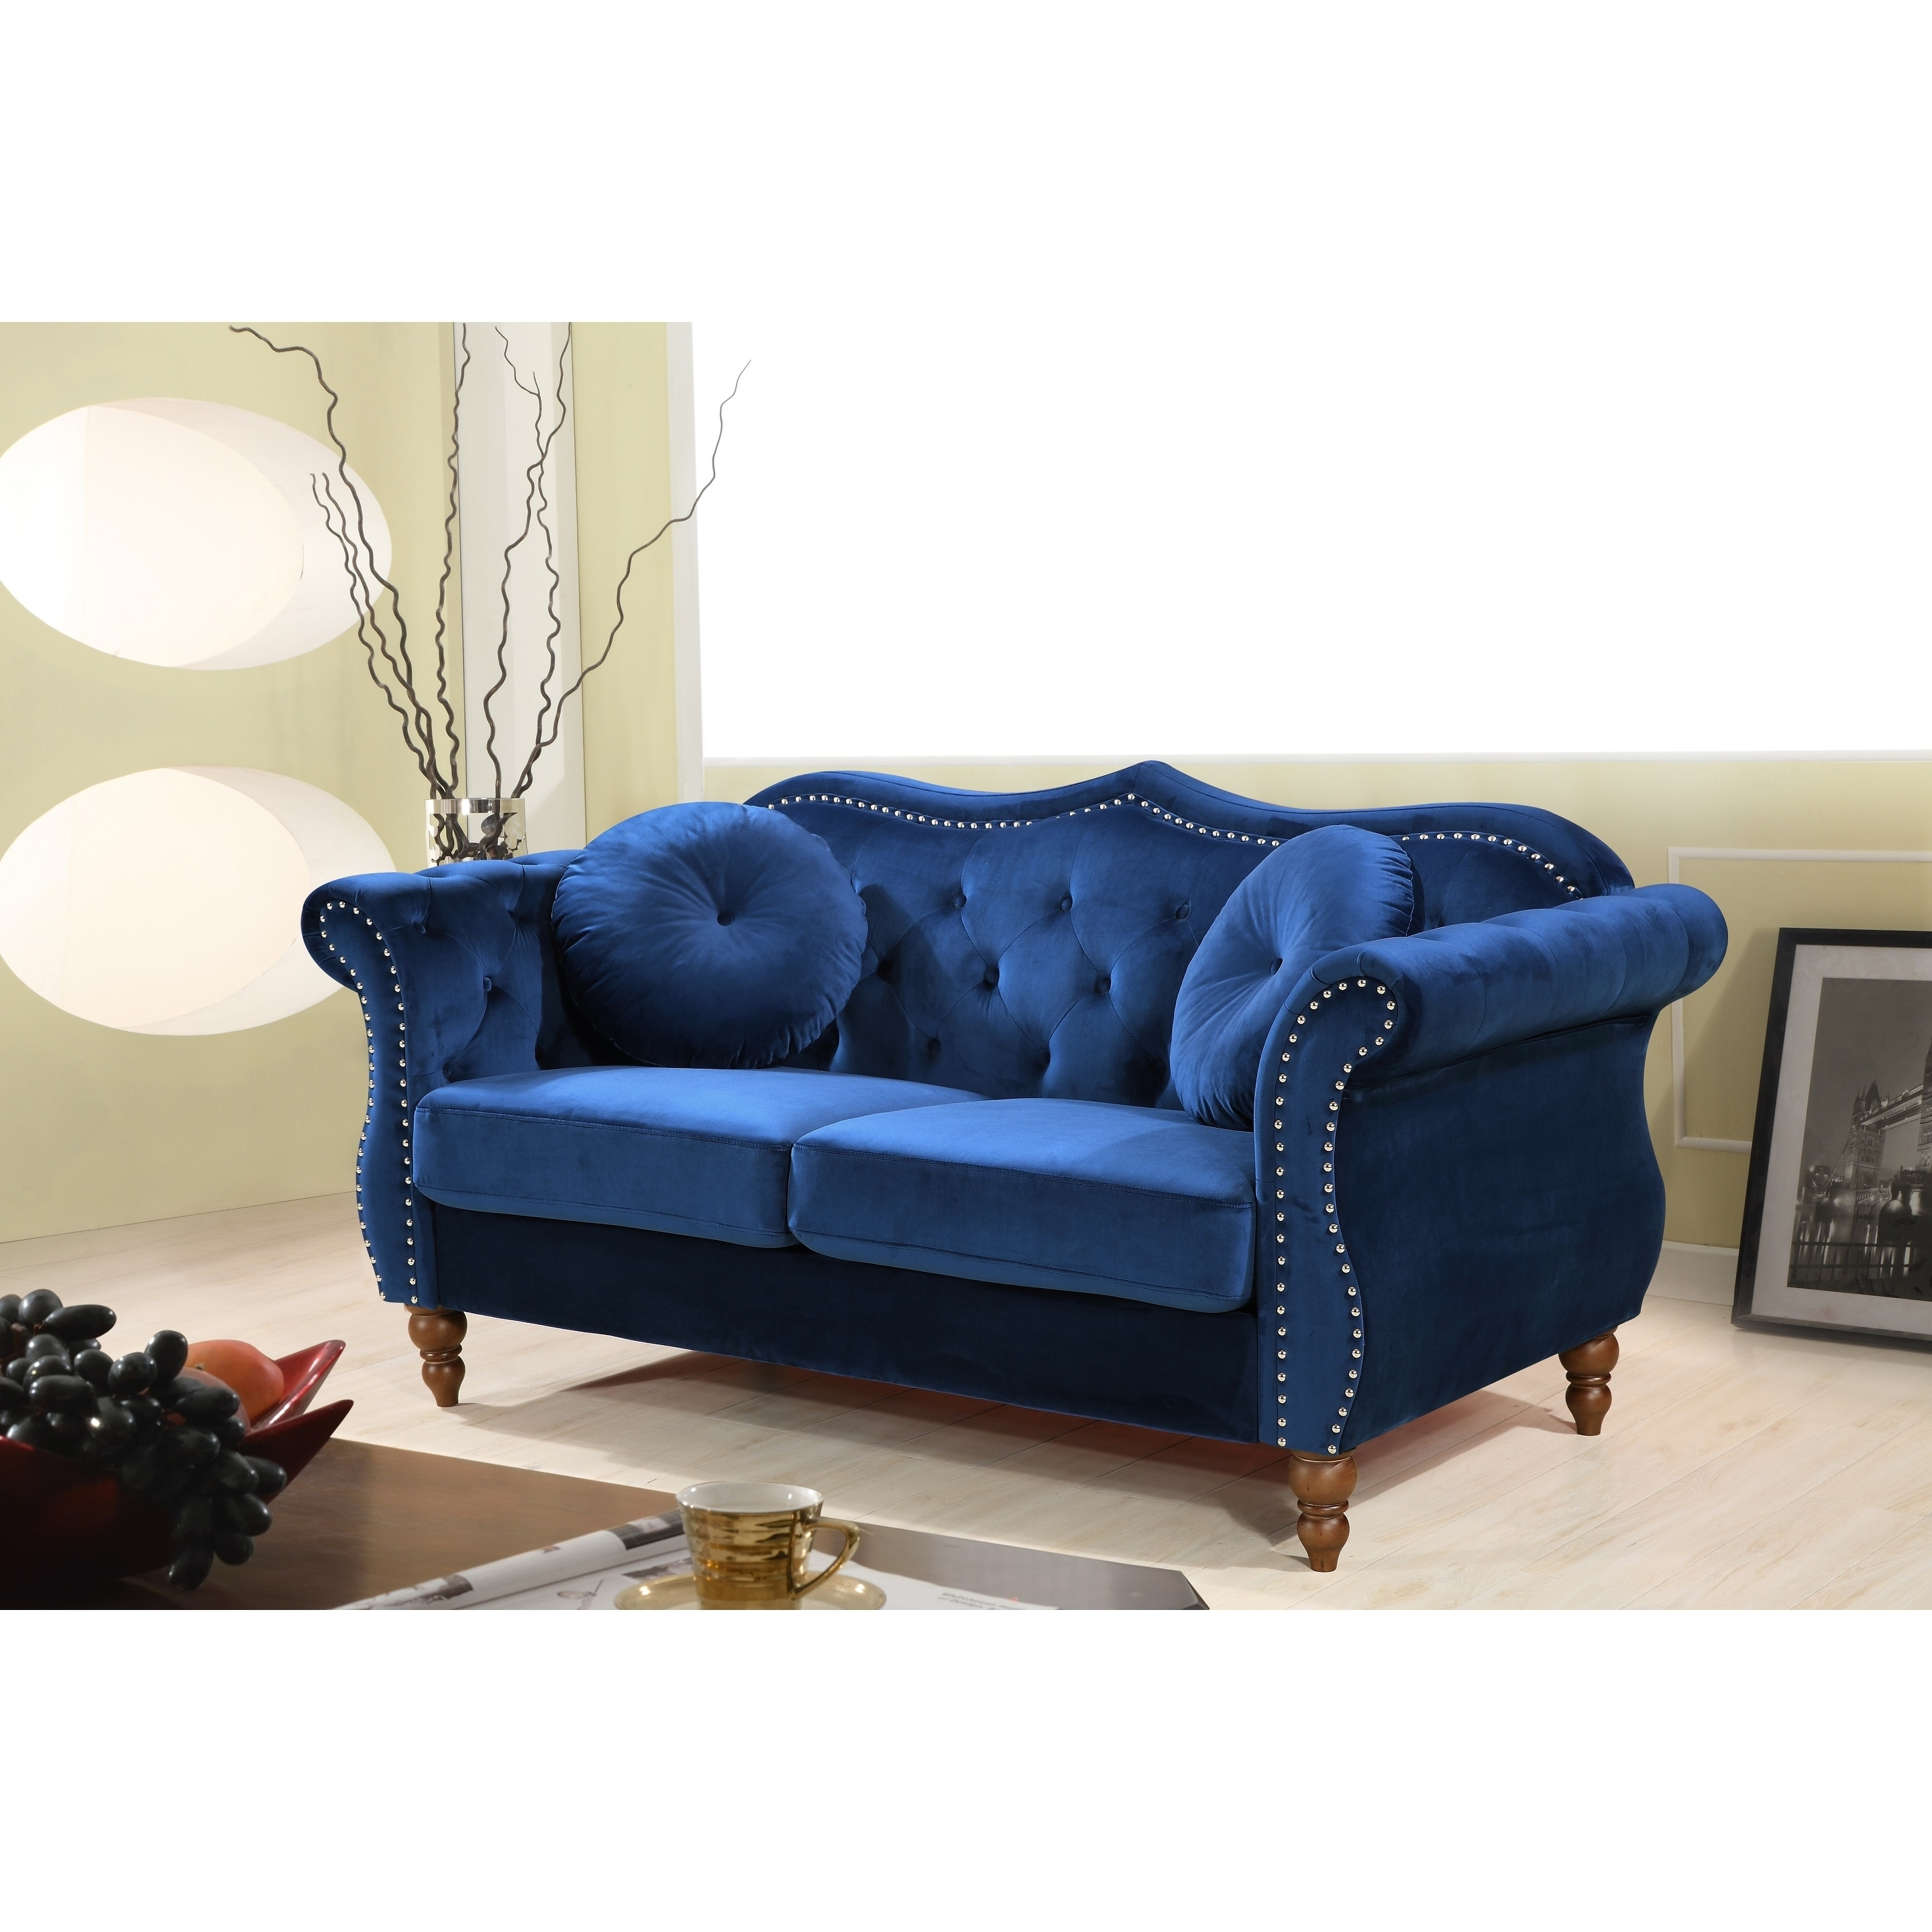 x bridgeford wide cm pin sofa with traditional scatter back loveseat plum deep cushions